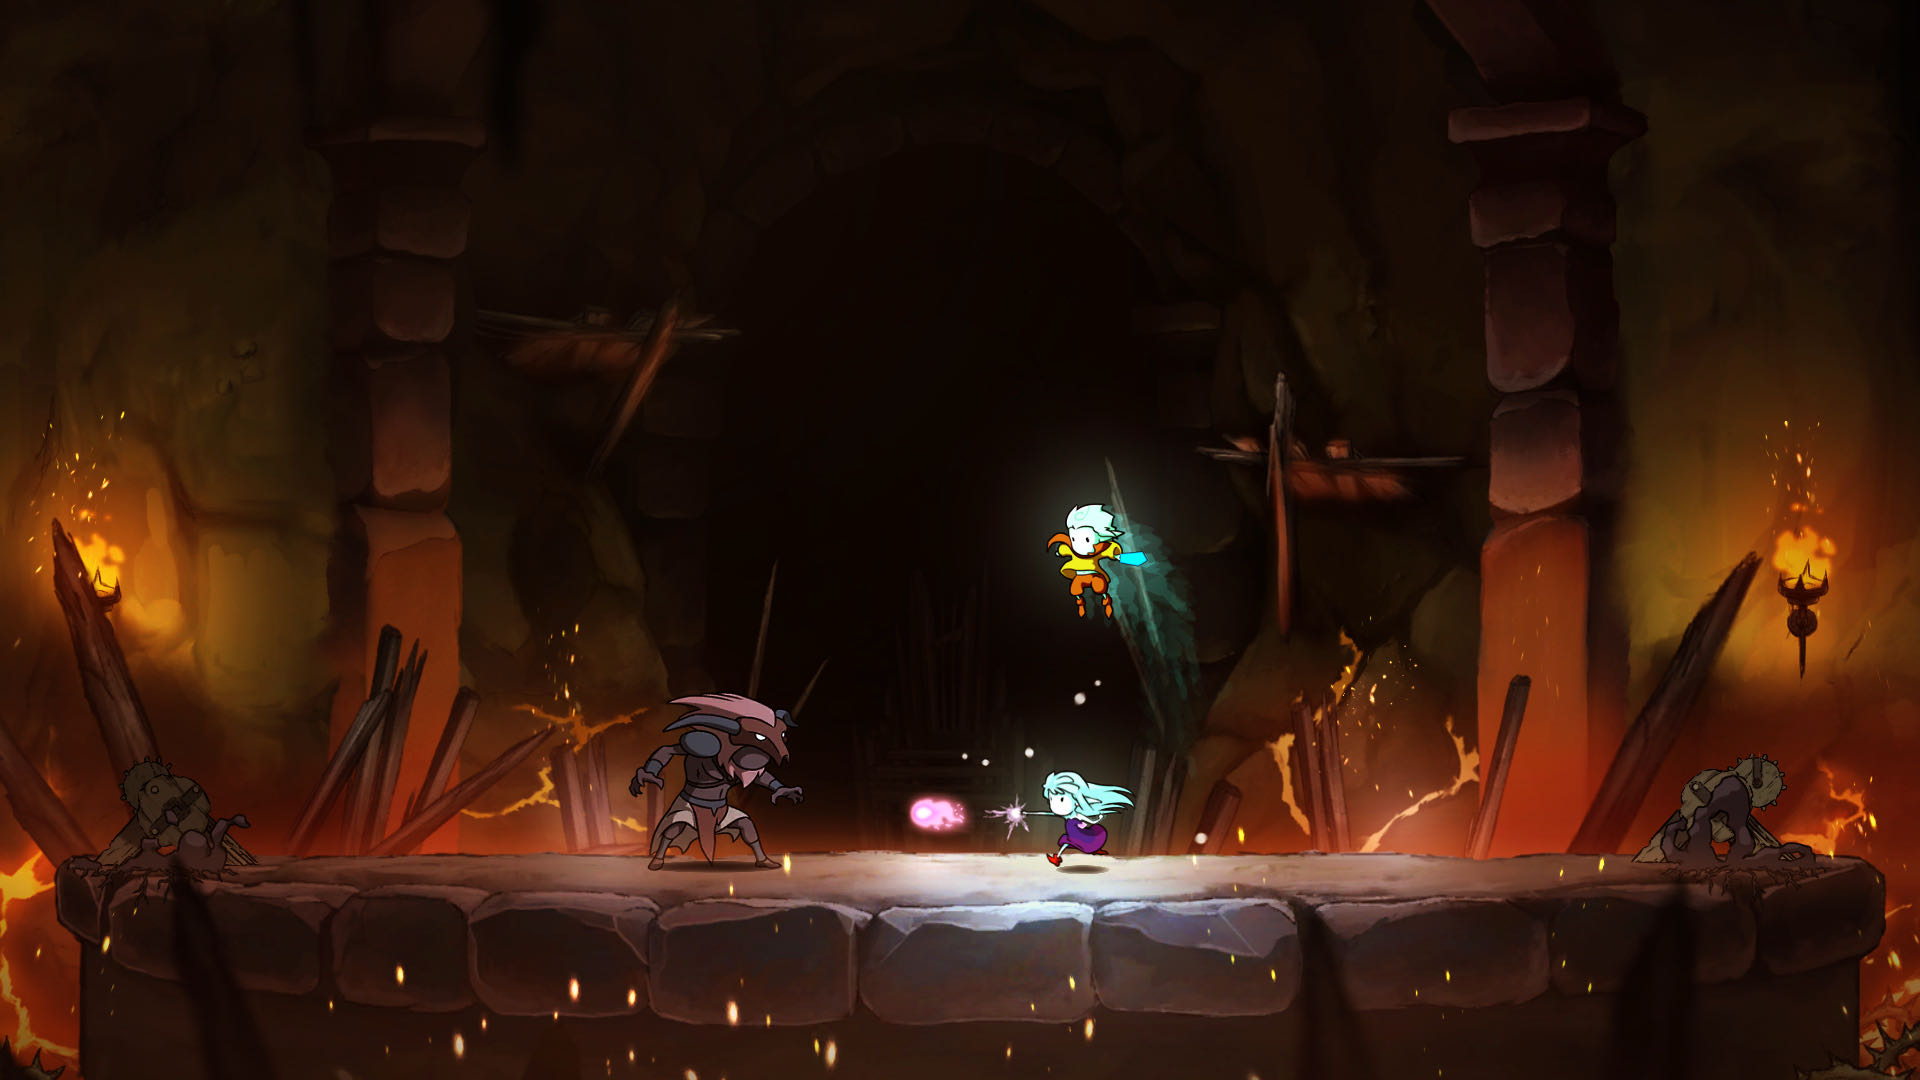 A screenshot from Greak, Greak and Adara are fighting a boss against a firey backdrop.